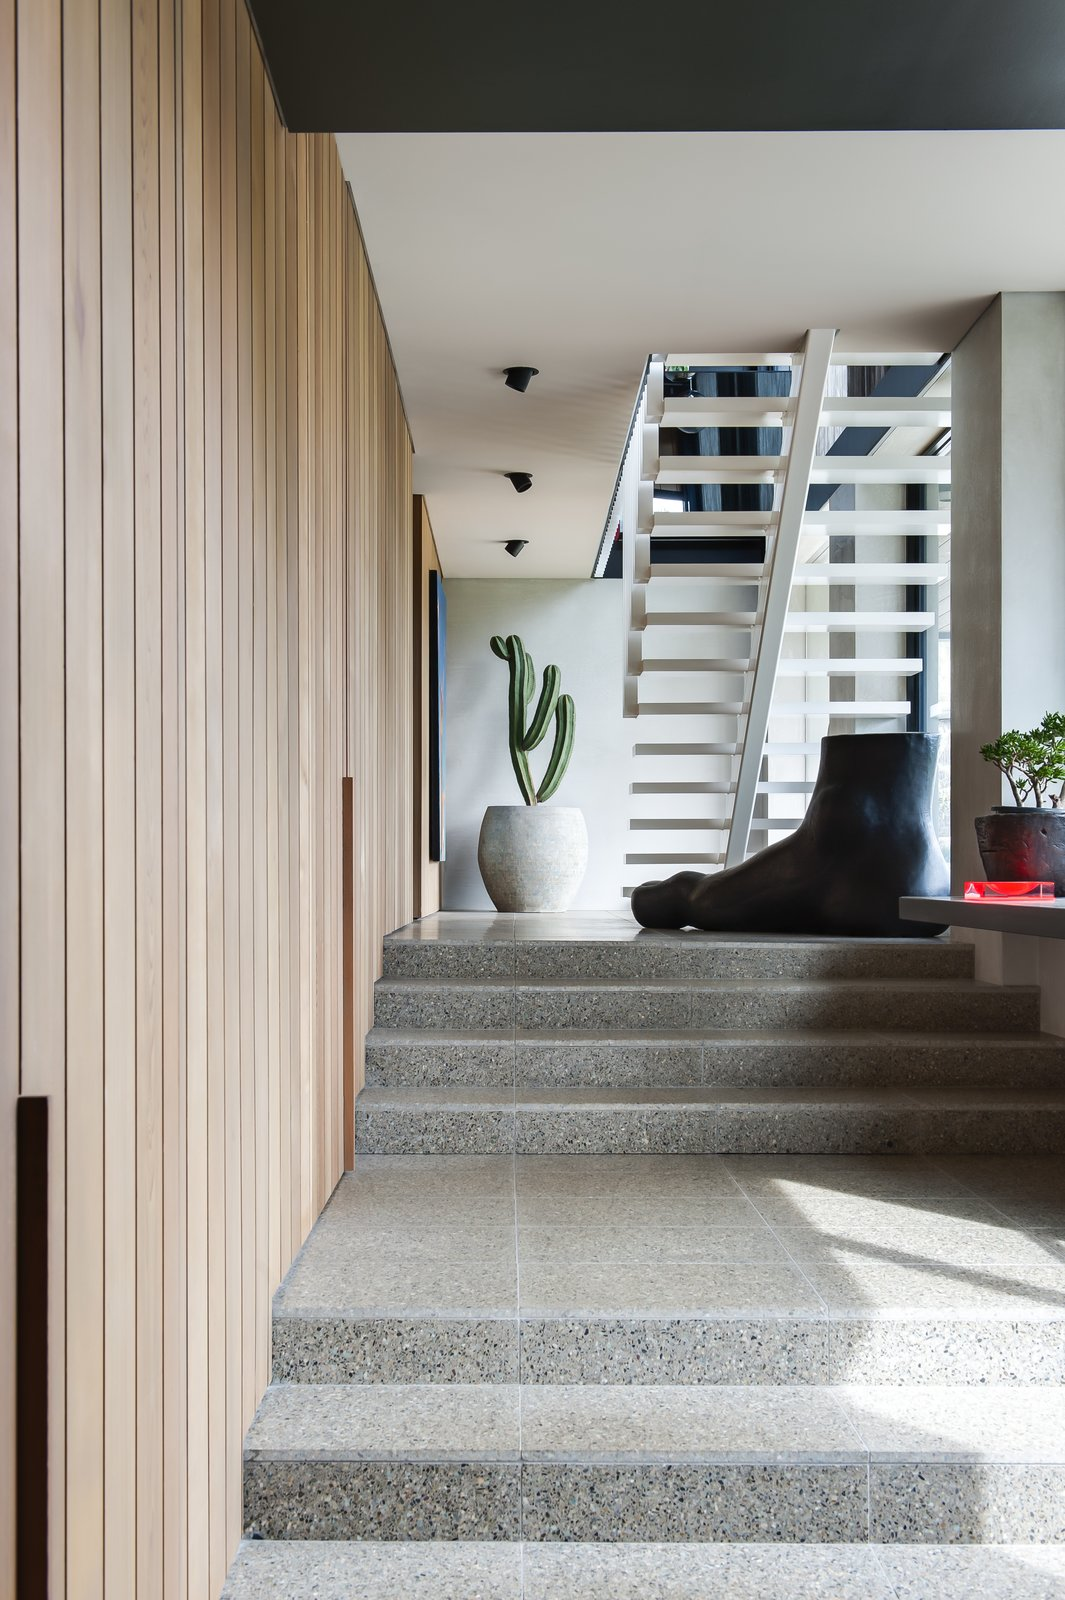 Staircase  Photo 5 of 7 in Unexpected Bursts of Color Enliven a Midcentury Pad in Australia